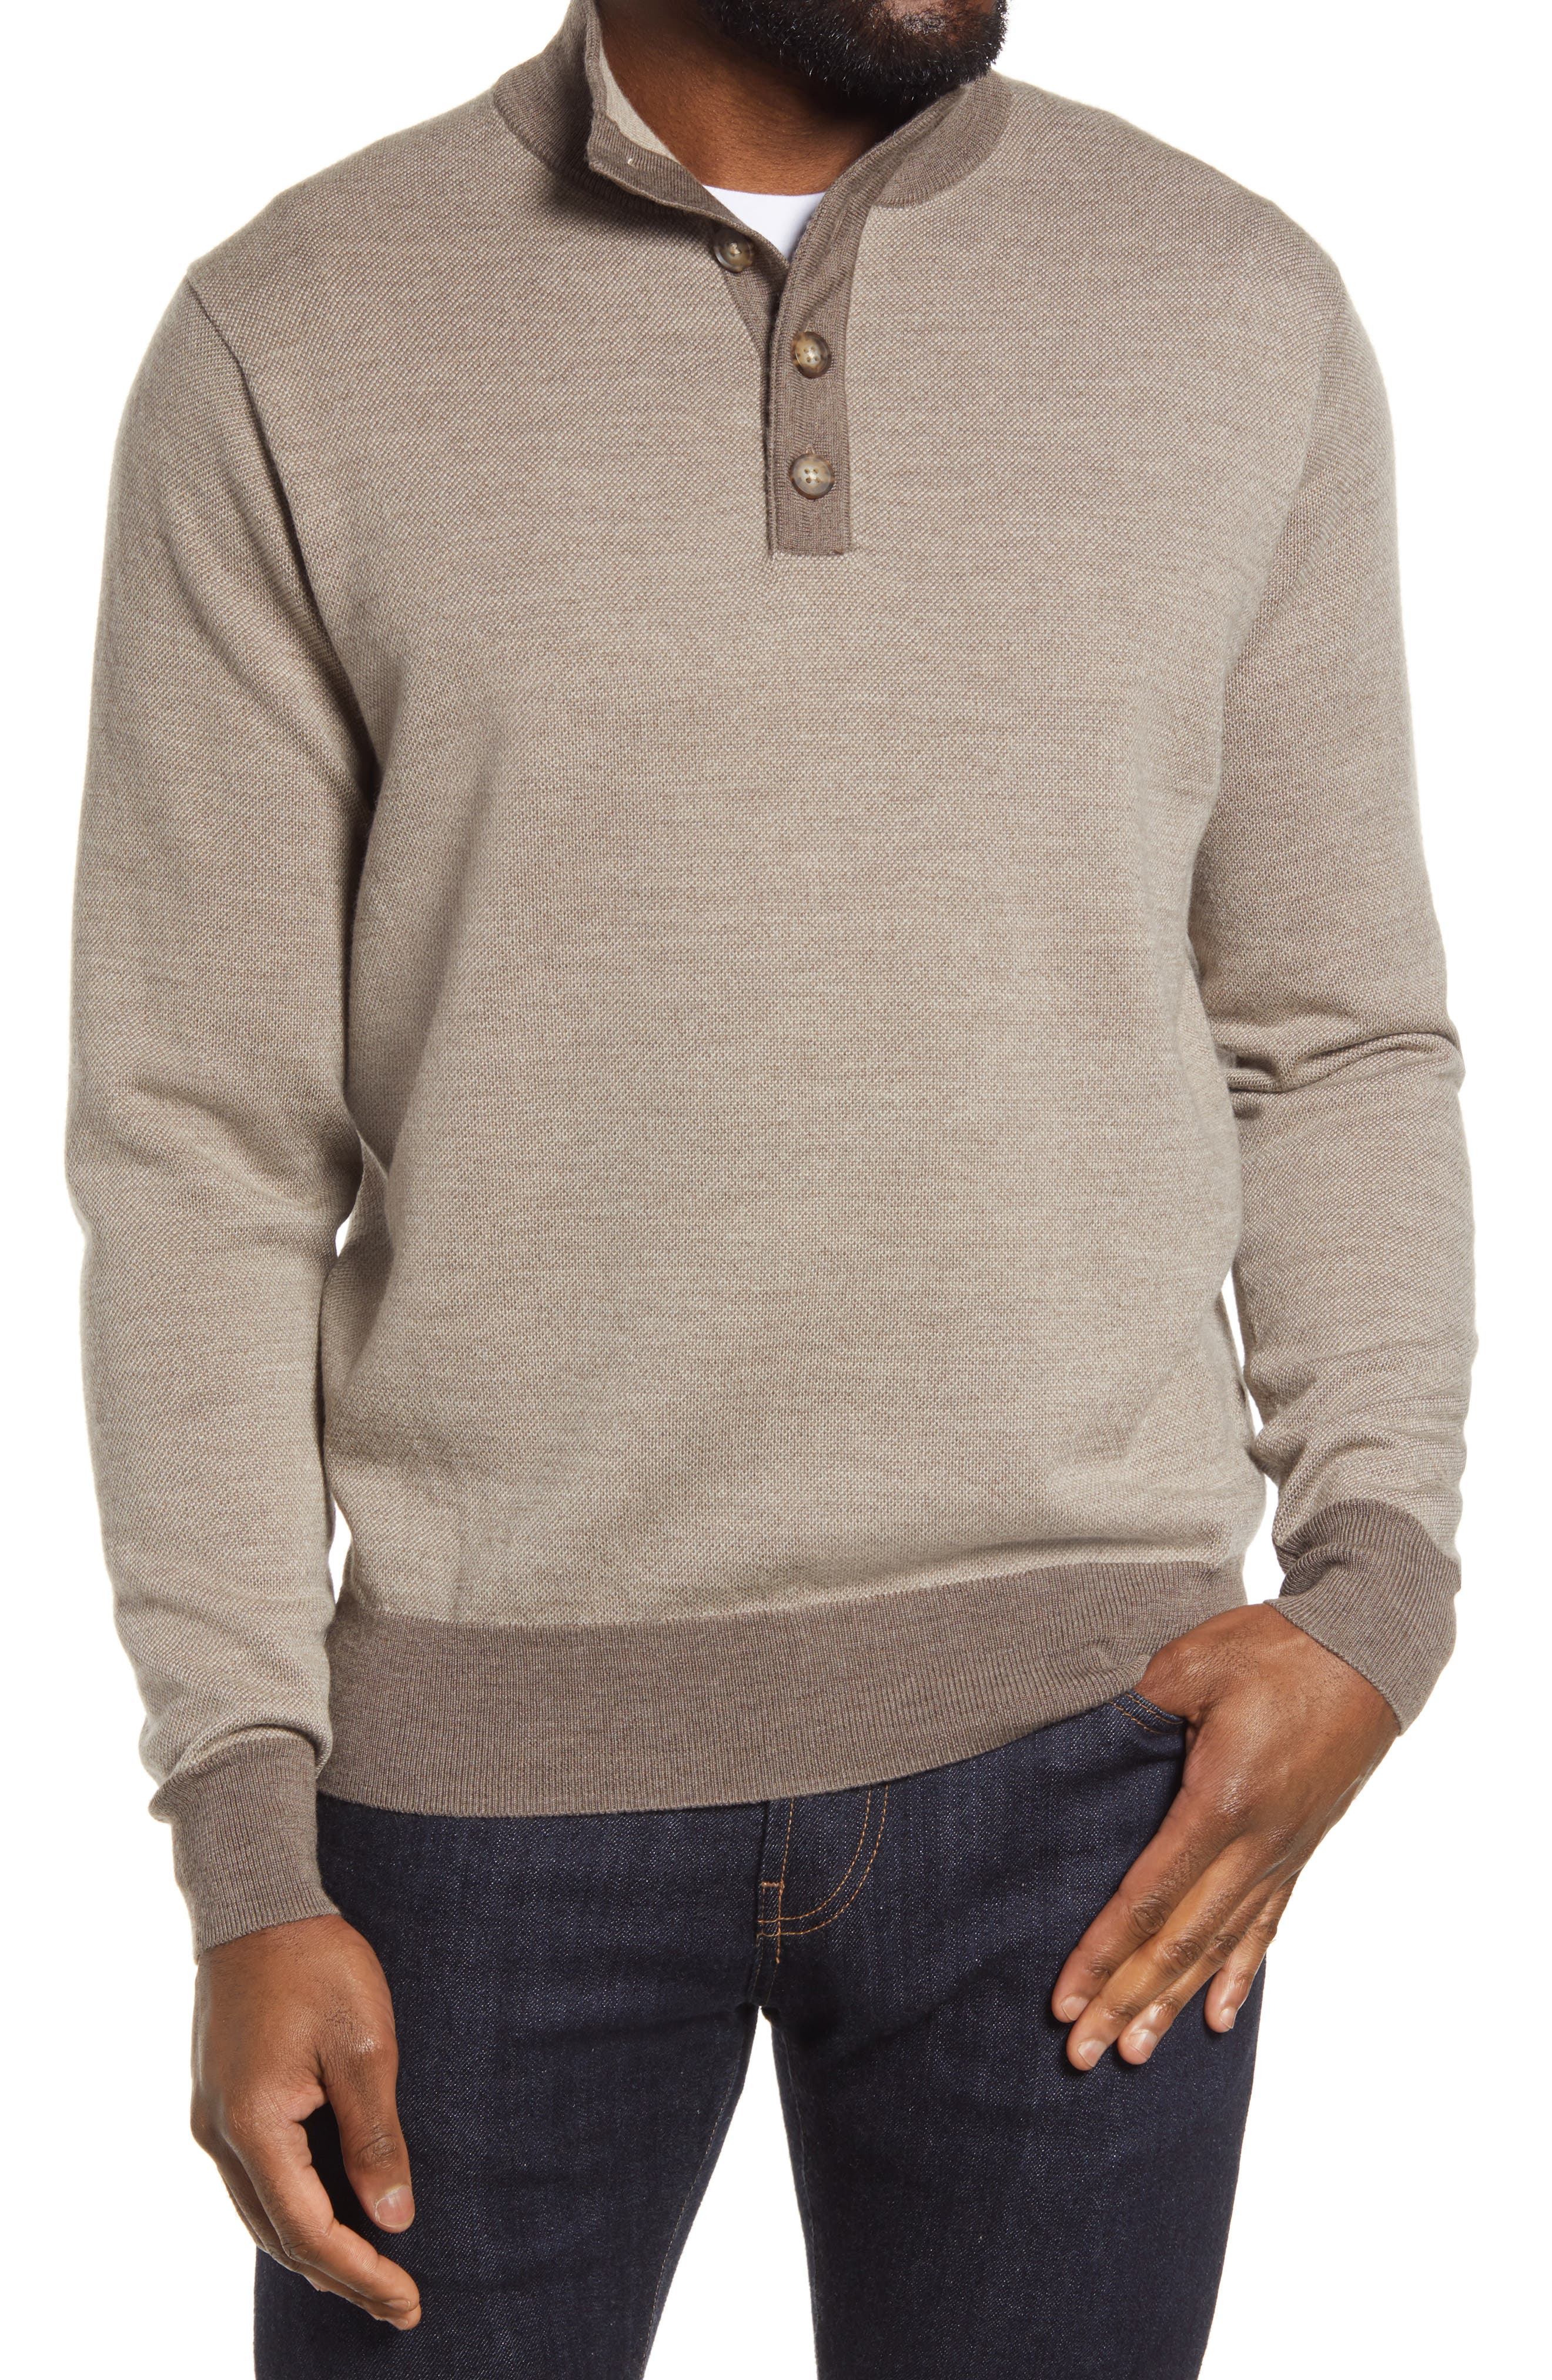 Enjoy the after-game festivities in the warm comfort of this soft merino wool pullover cut in a stylish silhouette. Style Name: Peter Millar Bird\\\'S Eye Wool Mock Neck Pullover. Style Number: 6113766. Available in stores.